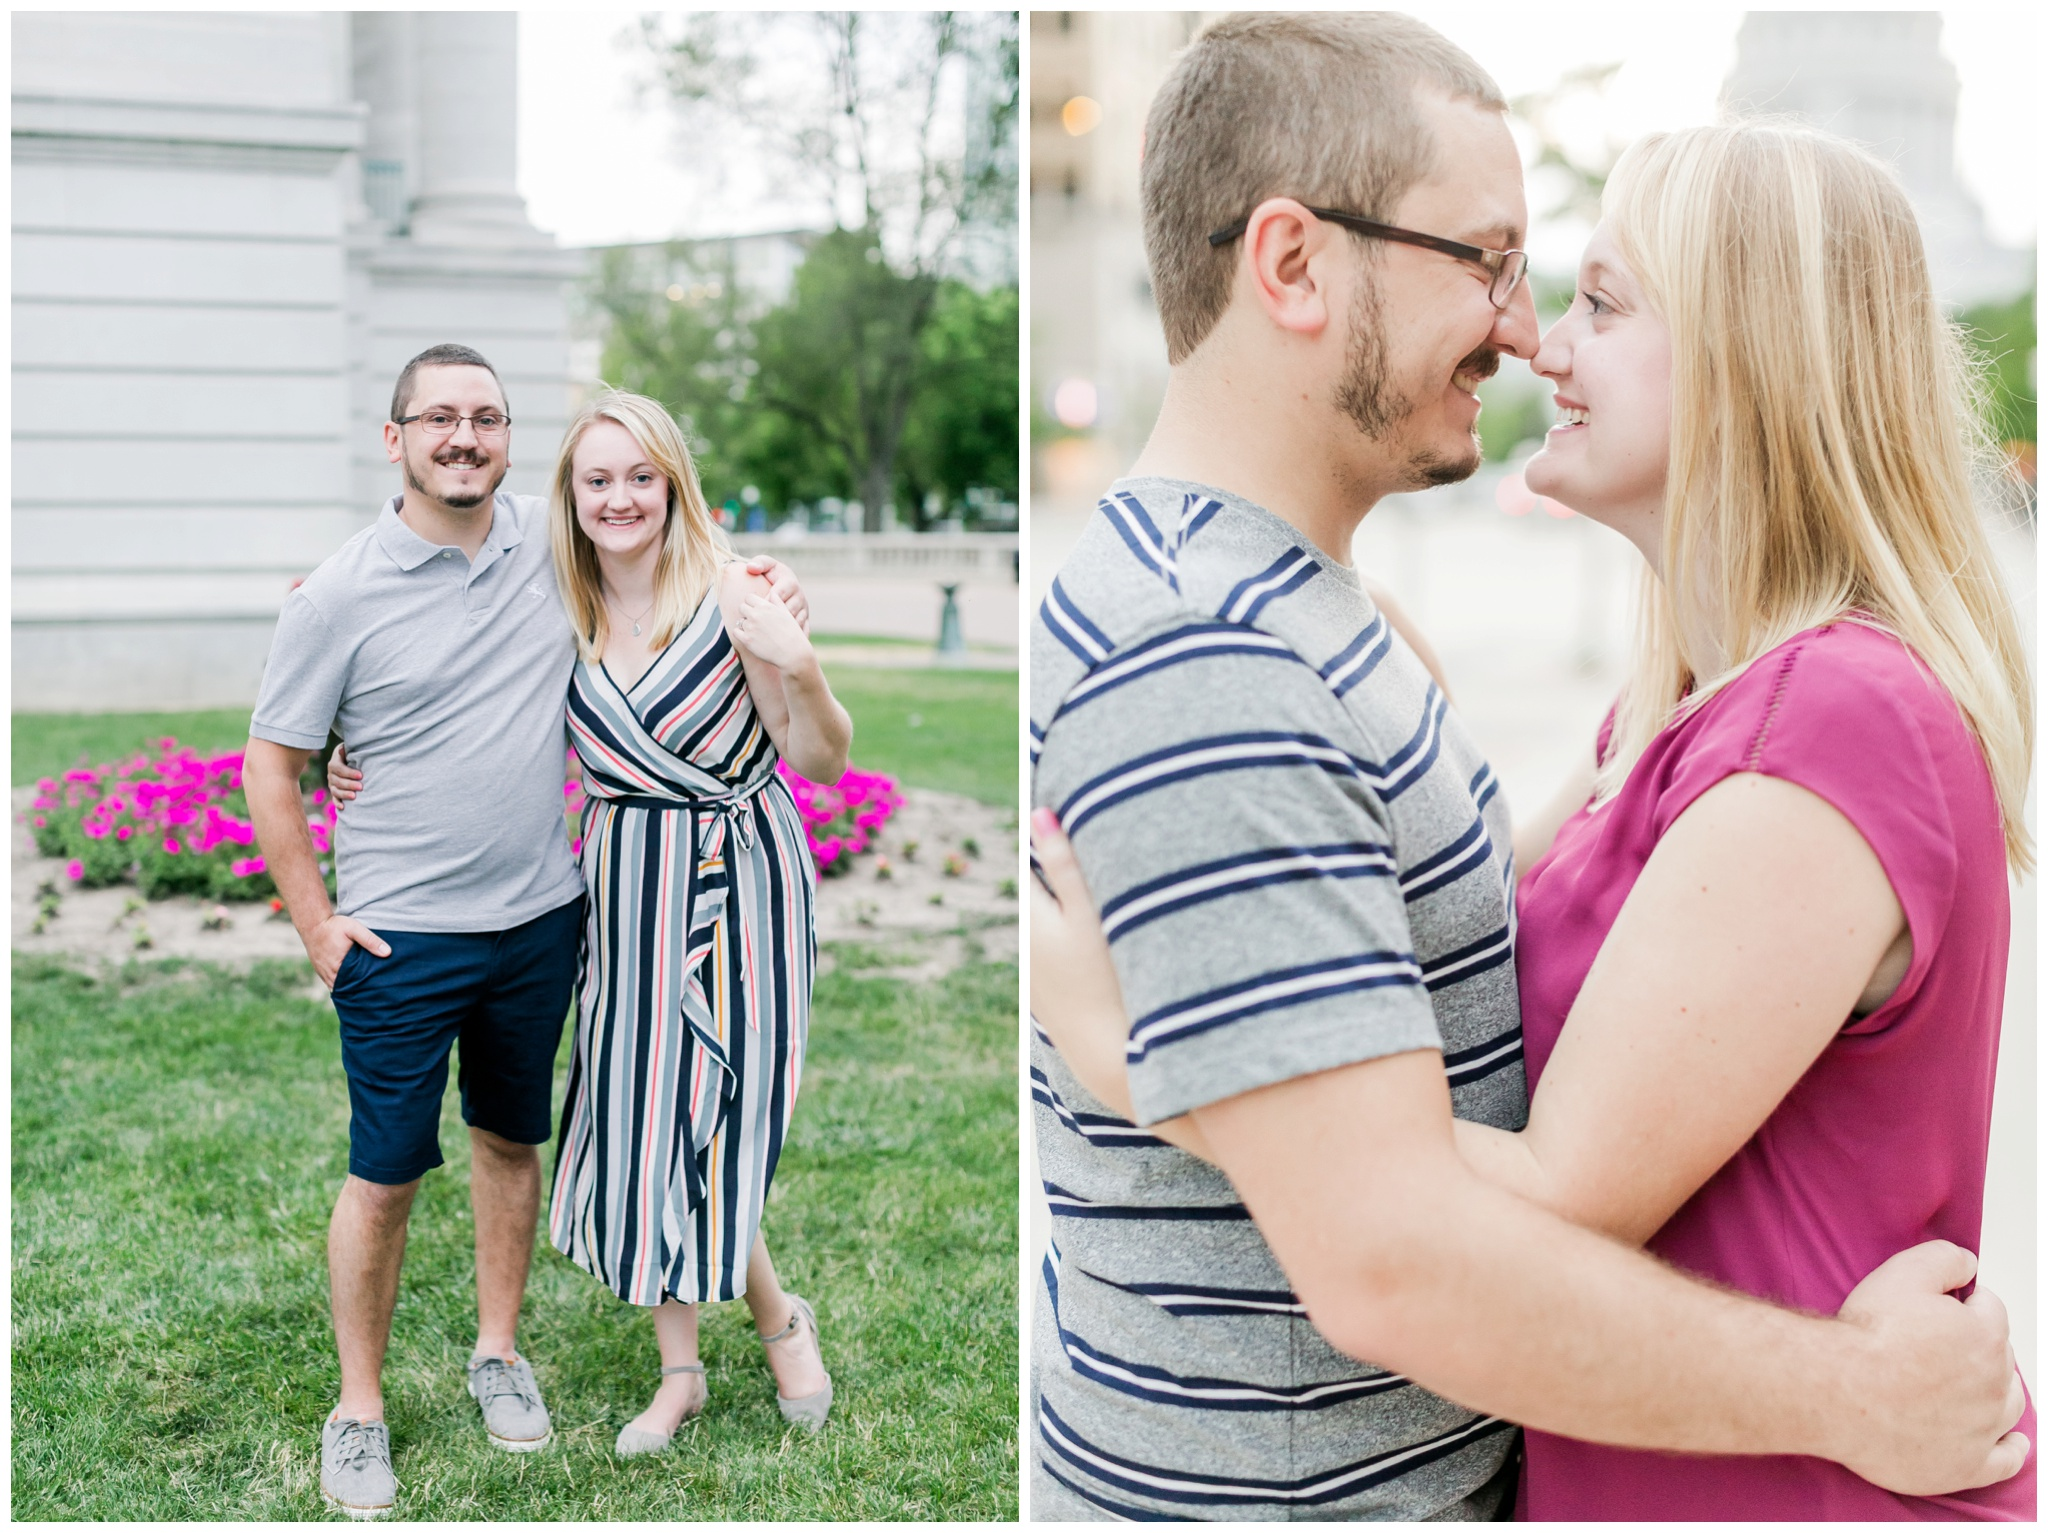 Downtown_madison_wisconsin_engagement_session_4222.jpg